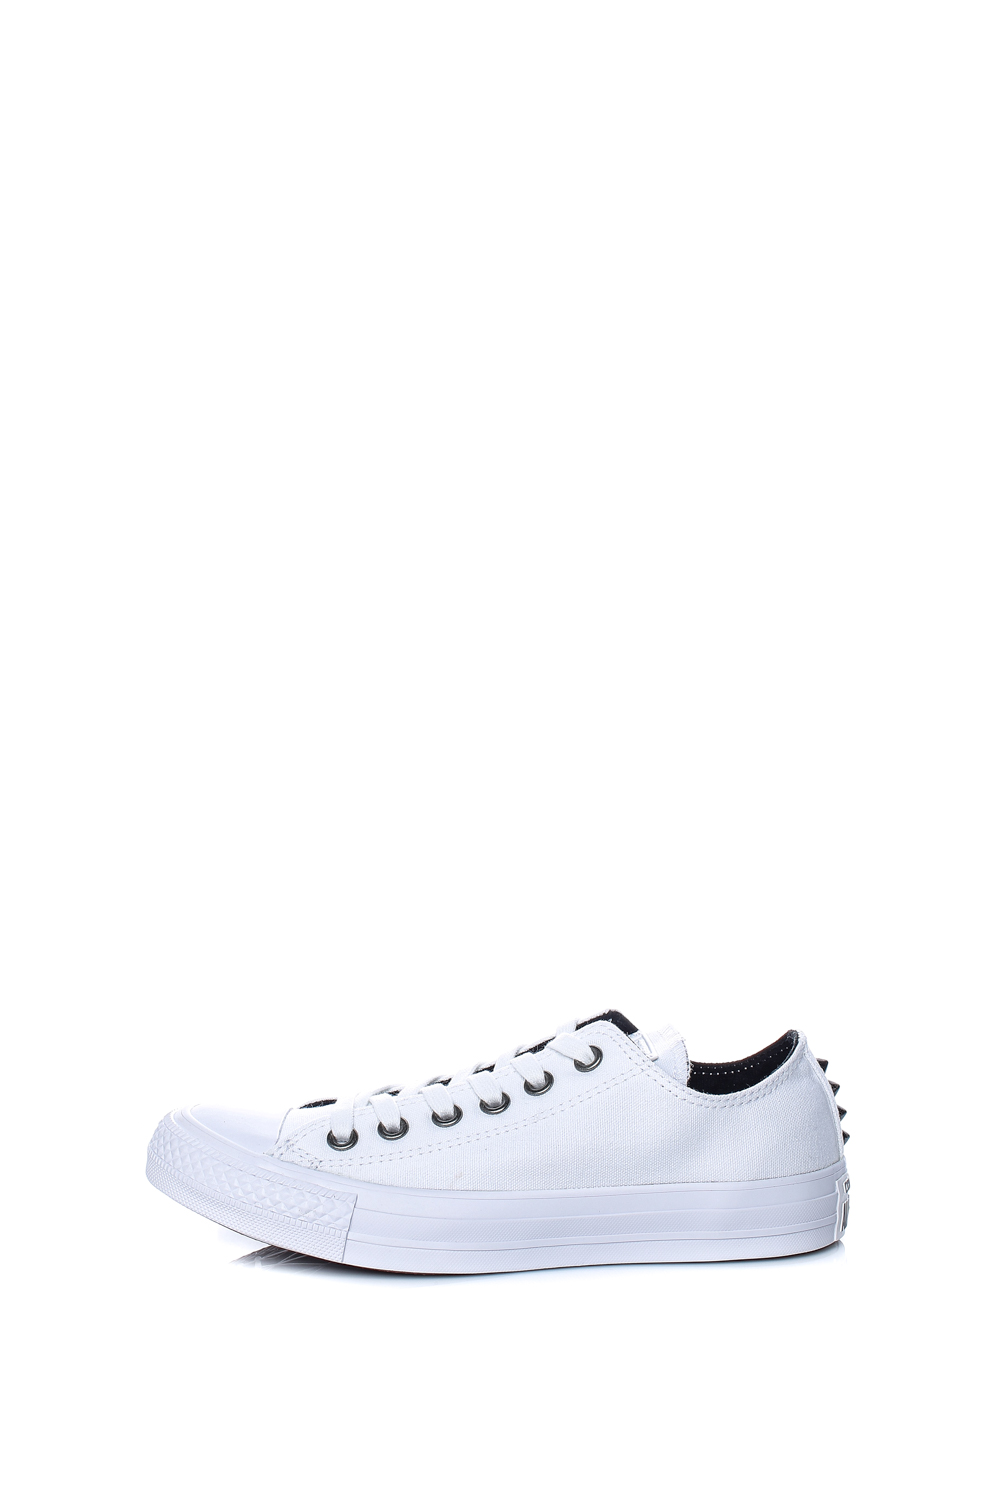 -40% Collective Online CONVERSE – Γυναικεία sneakers Converse Chuck Taylor  All Star Ox λευκά με studs dc7d611e3f5